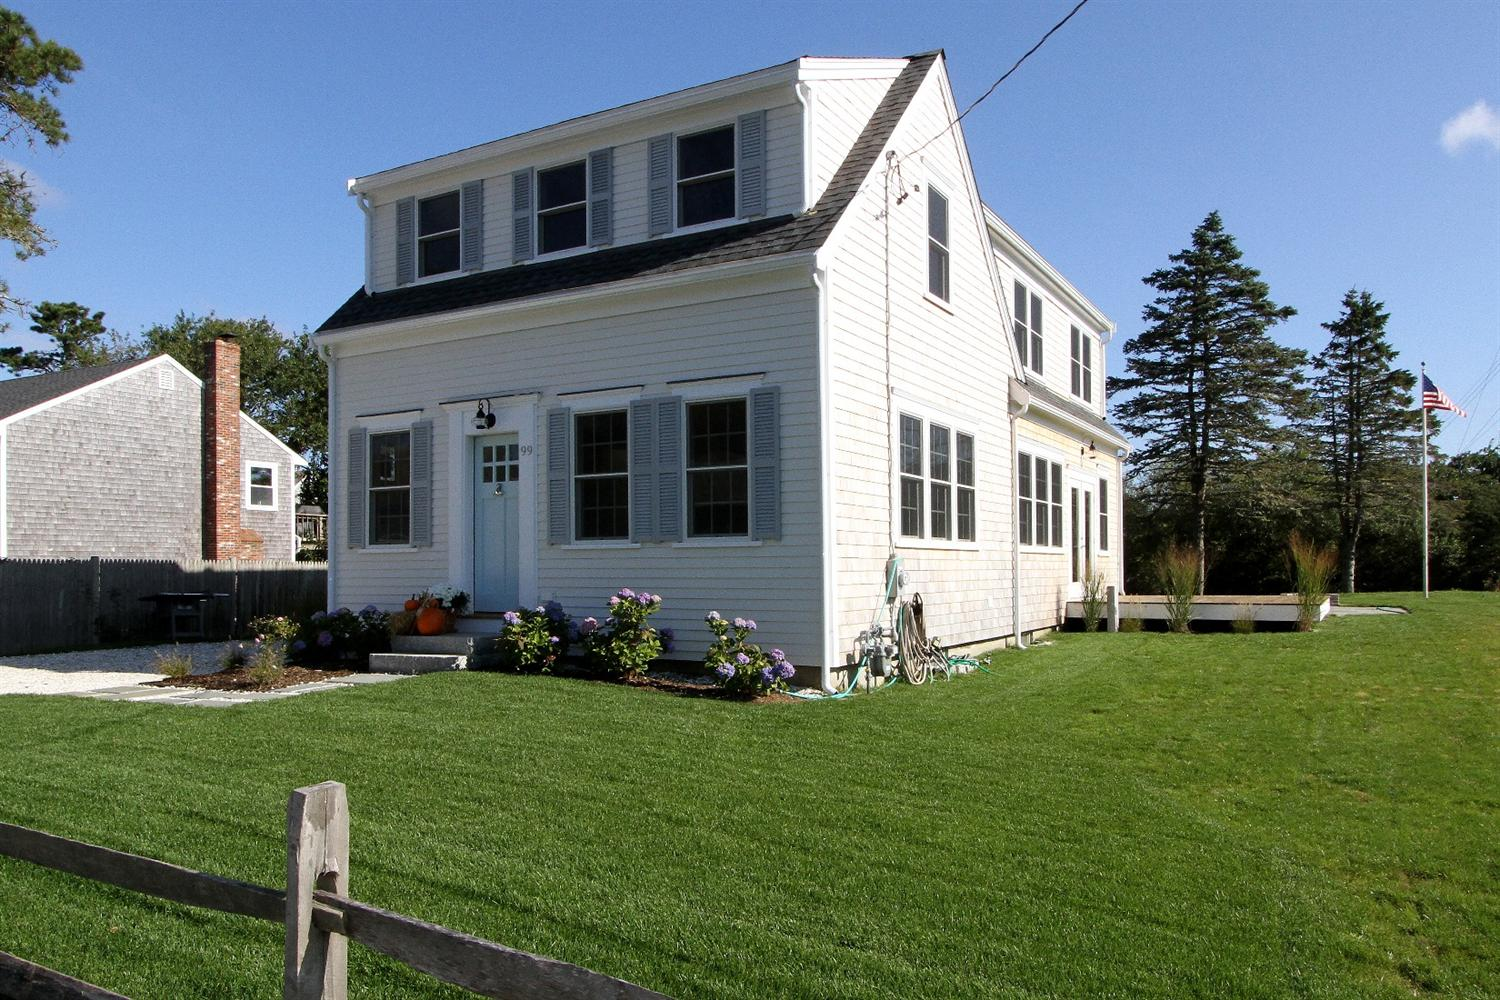 Property For Sale at 99 Pond View Avenue, Chatham, MA